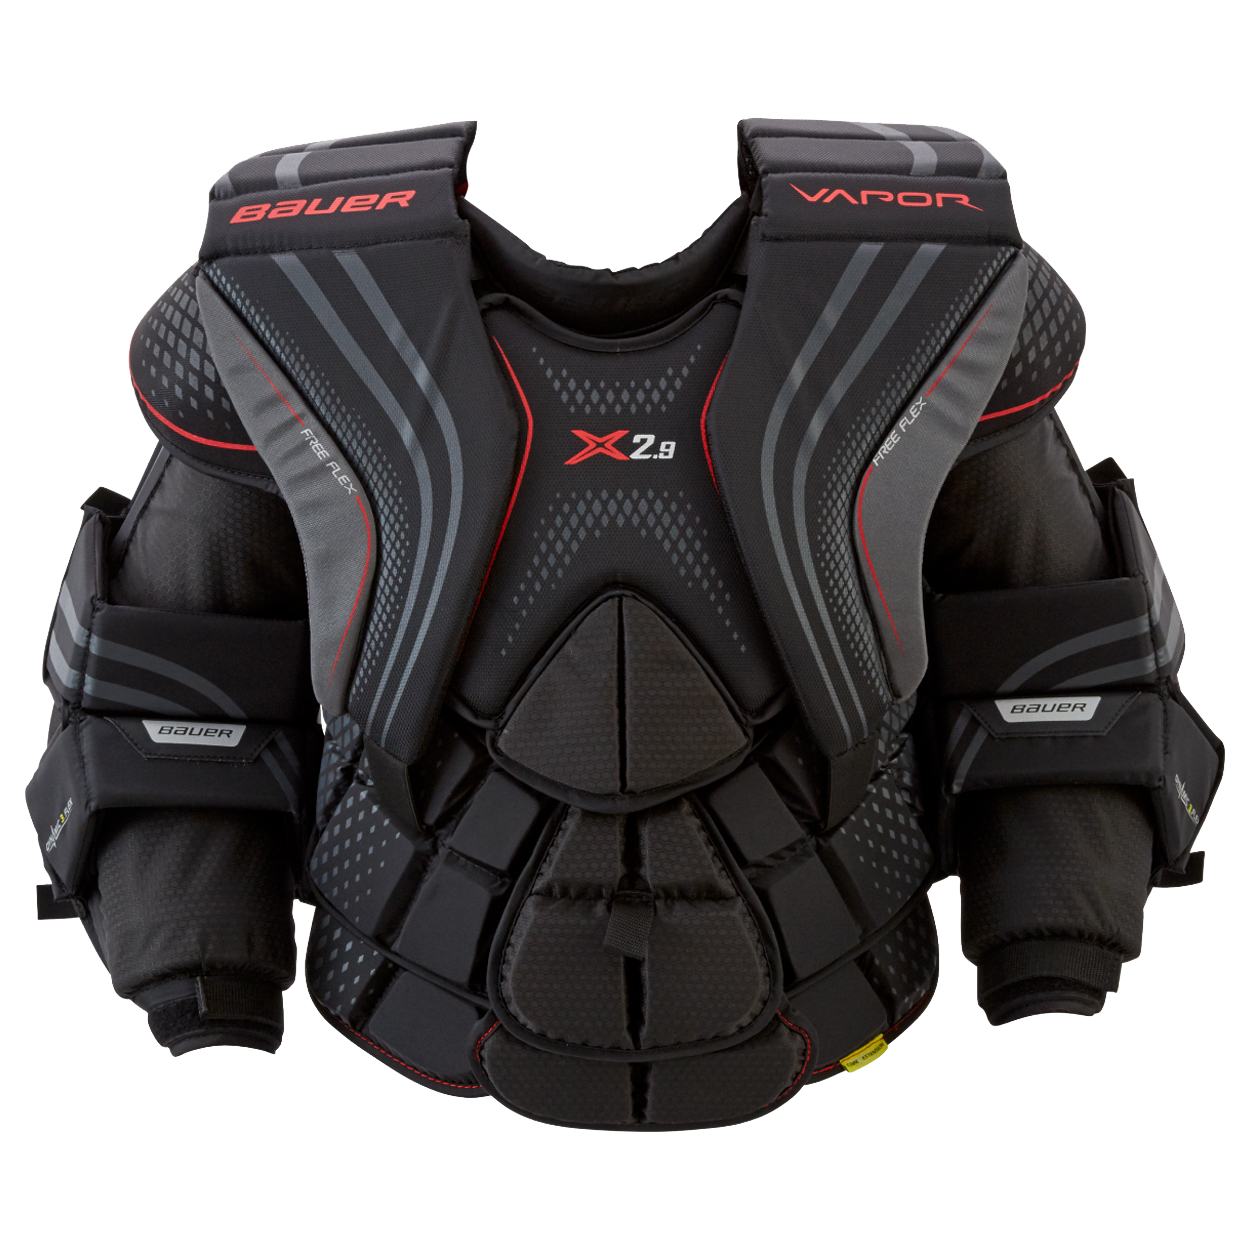 Vapor X2.9 Chest Protector Senior,,Размер M